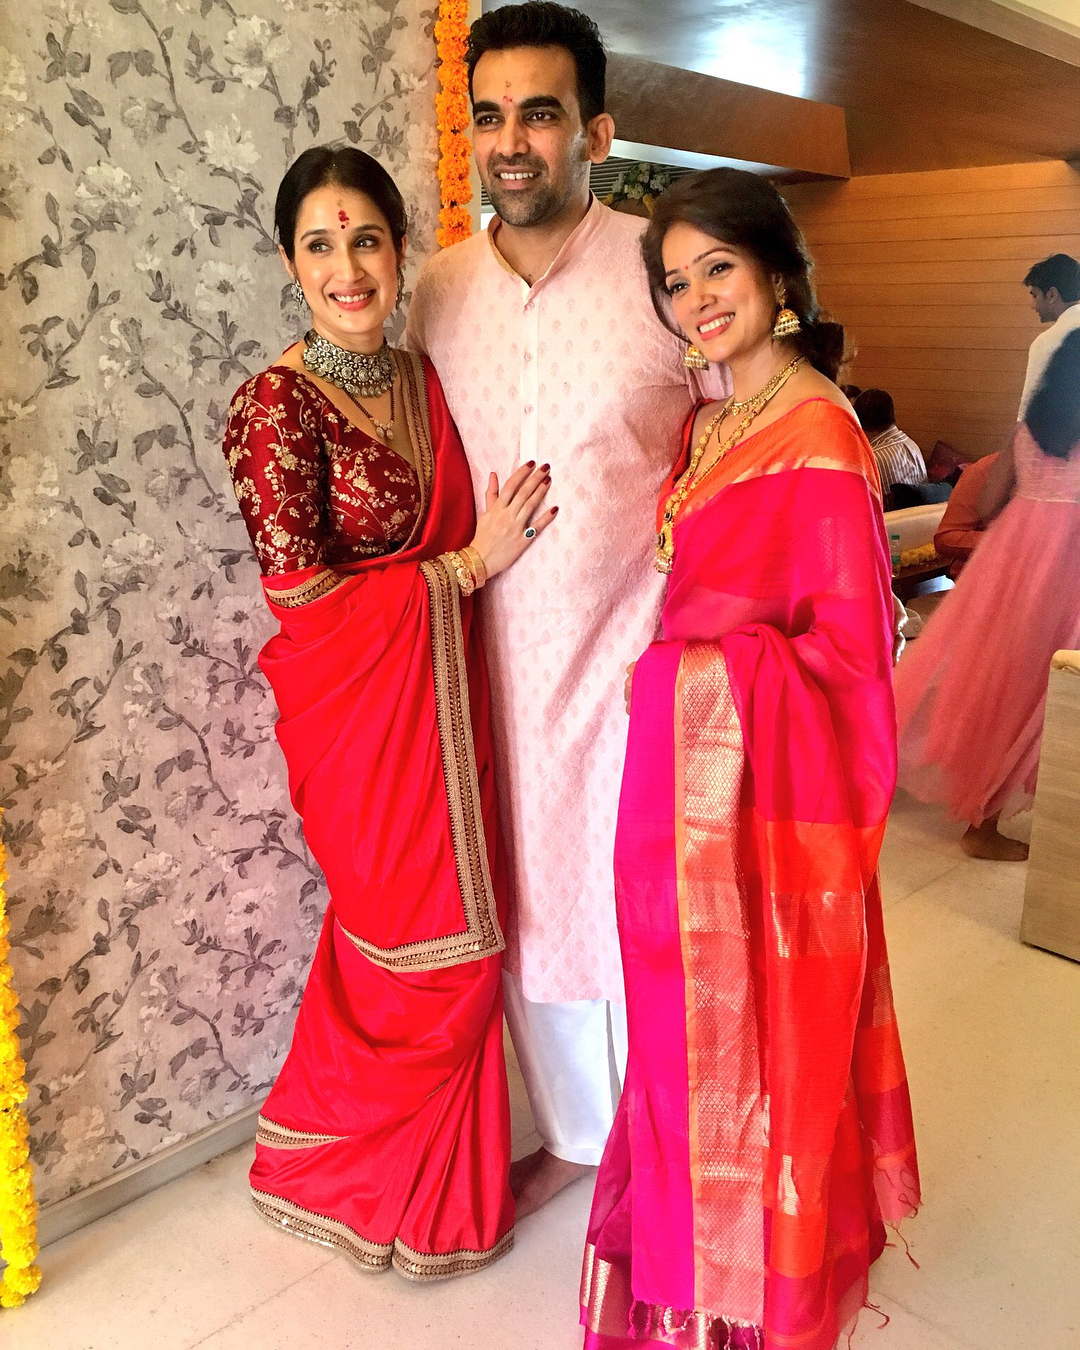 Sagarika Ghatge Red Sabyasachi Wedding Saree